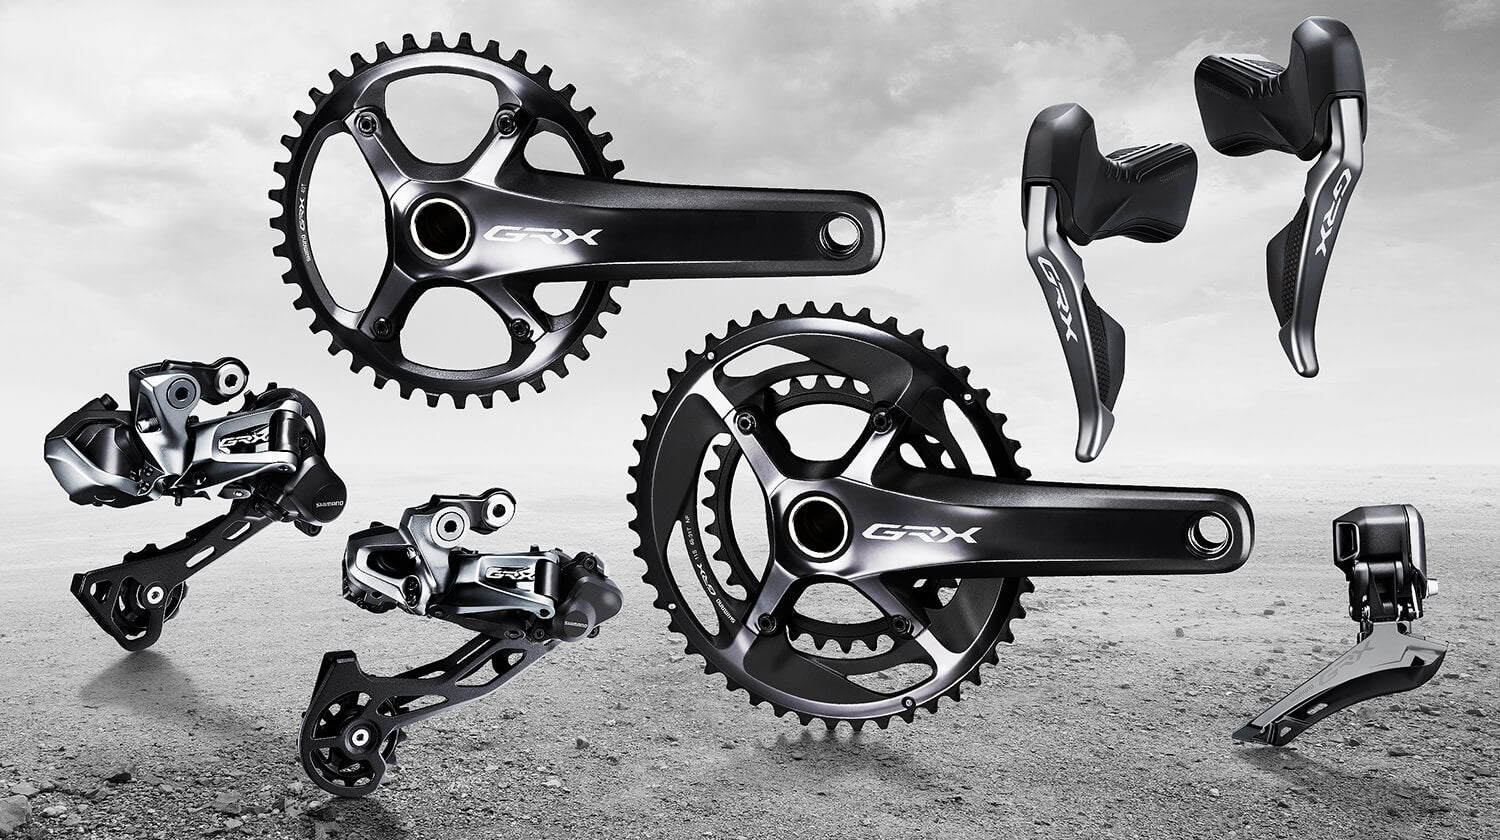 Shimano GRX Groupset - Contender Bicycles